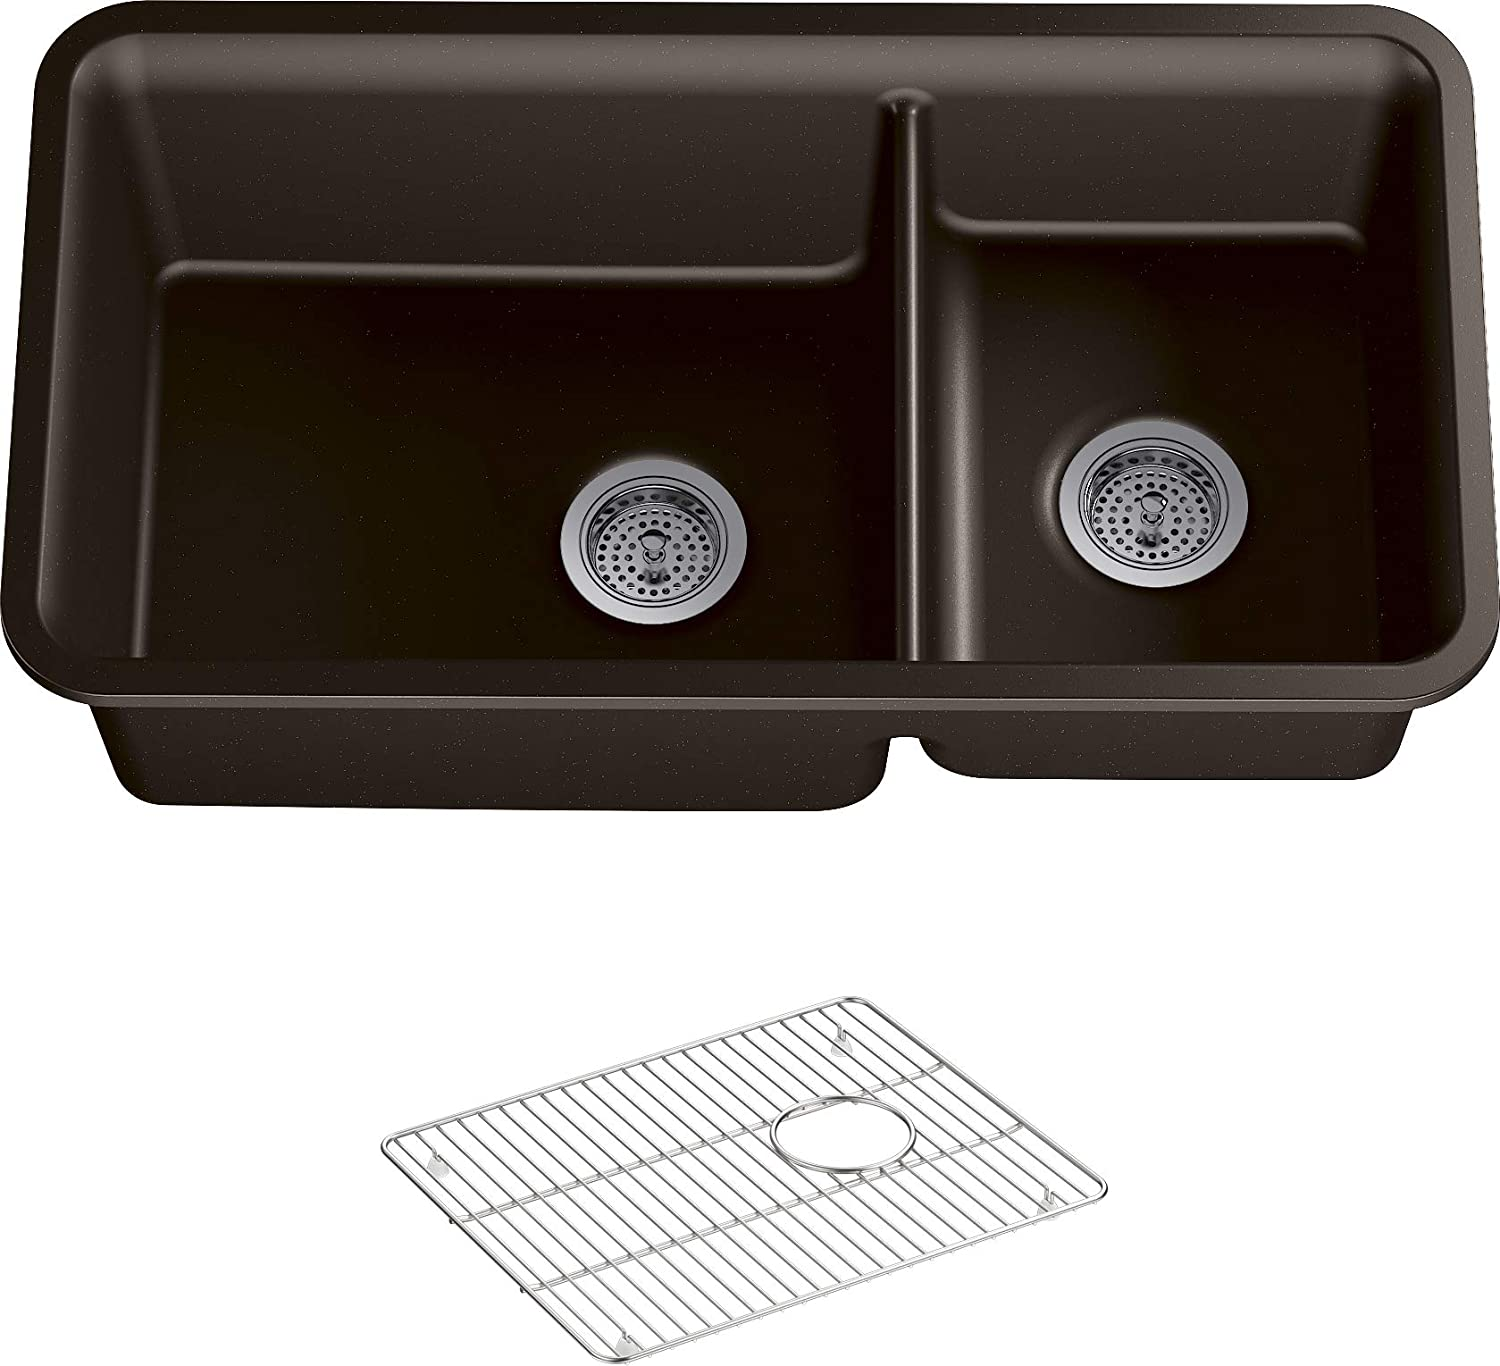 KOHLER 8204-CM2 Cairn Kitchen Sink, Matte Brown, 36